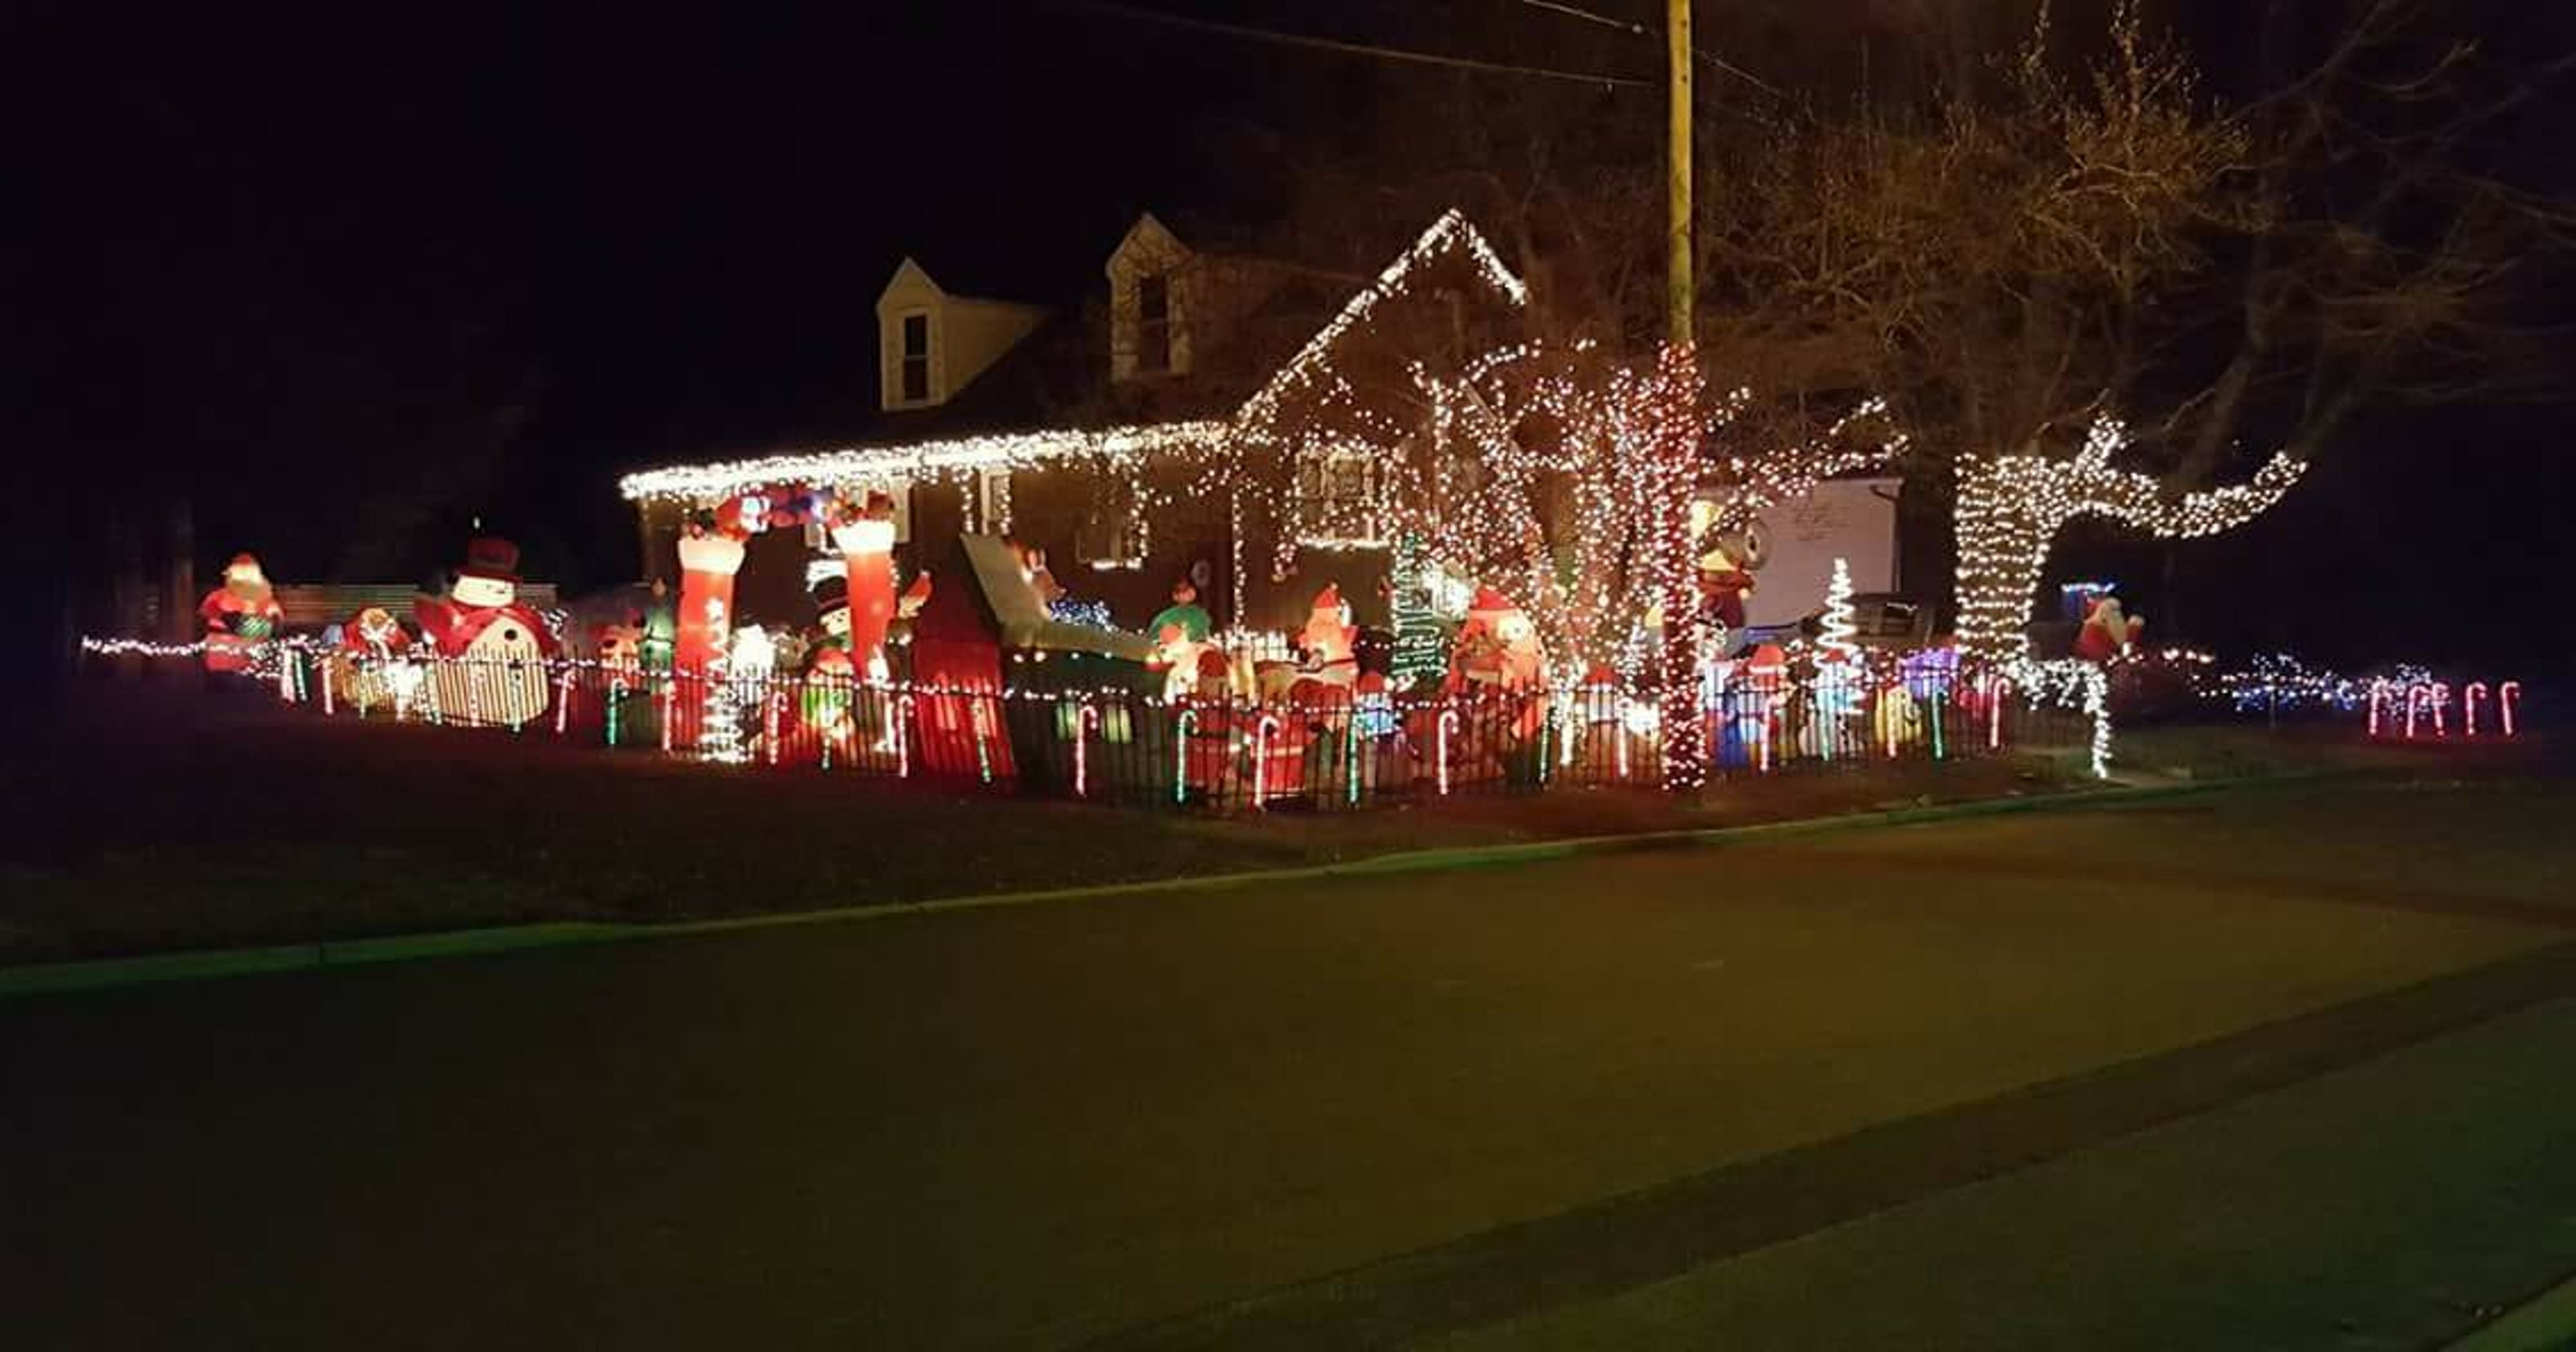 Christmas lights: Find displays in Cherry Hill, Pitman, Pennsauken NJ